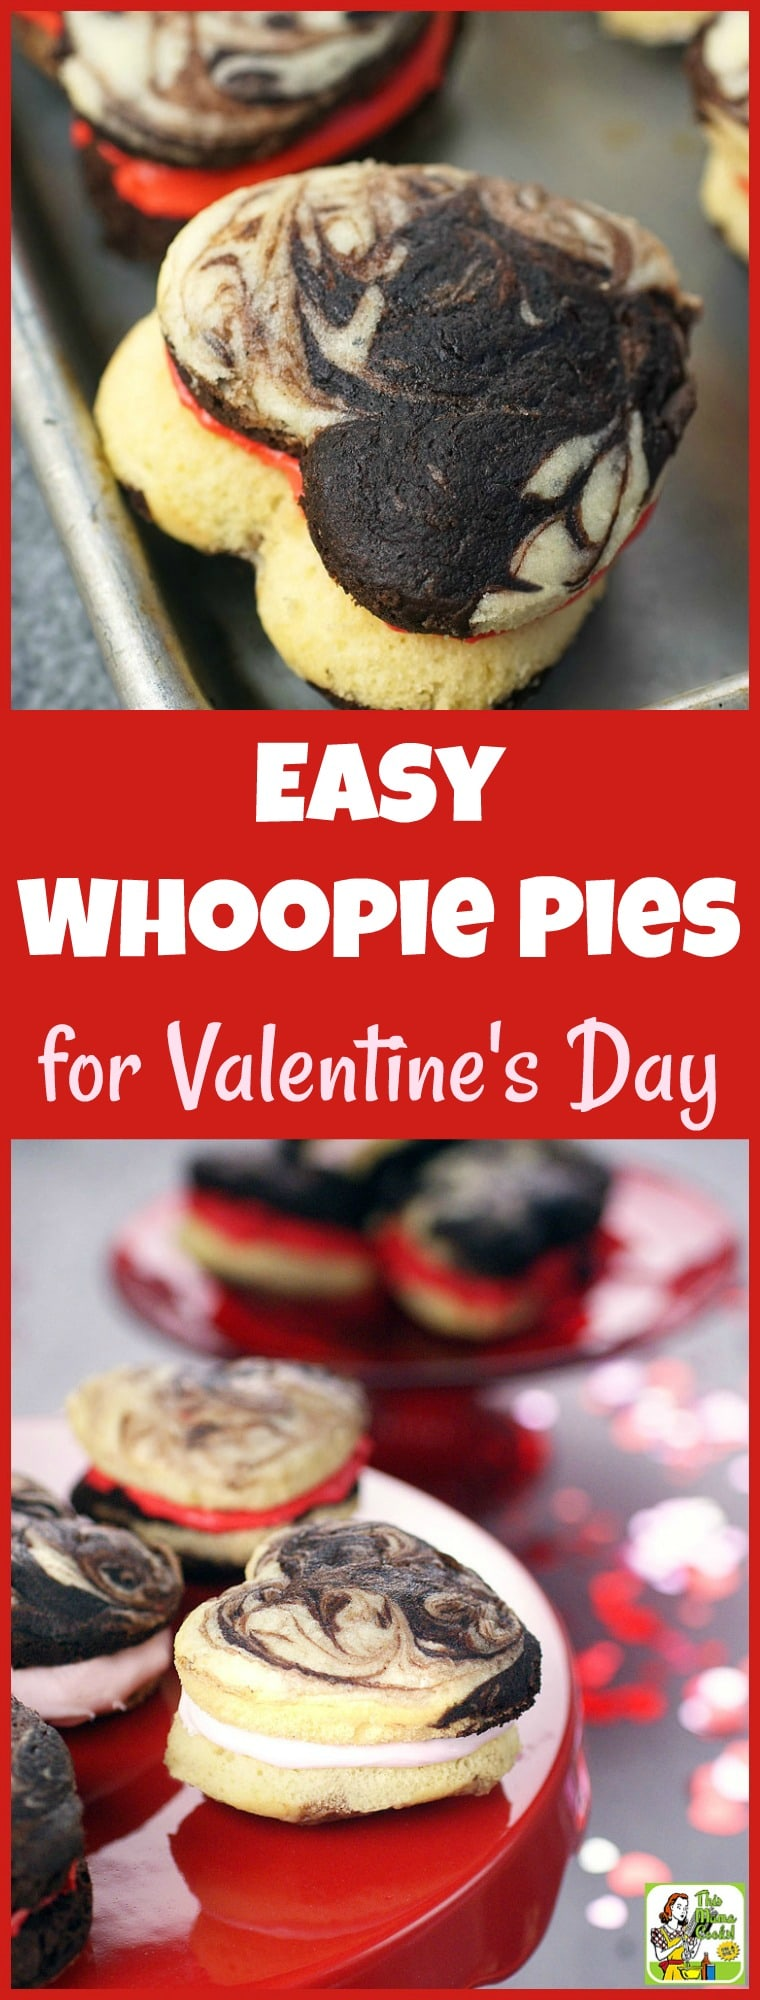 This Easy Whoopie Pies recipe for Valentine's Day is made from gluten-free cake mix in a heart shaped whoopie pie pan. The easy to make whoopie pie filling is a combination of store-bought frosting and Marshmallow Fluff. #recipe #easy #recipeoftheday #healthyrecipes #glutenfree #easyrecipes #desserts #dessertrecipes #dessertideas #baking #bakingrecipes #easybaking #ValentinesDay #dairyfree #whoopiepies